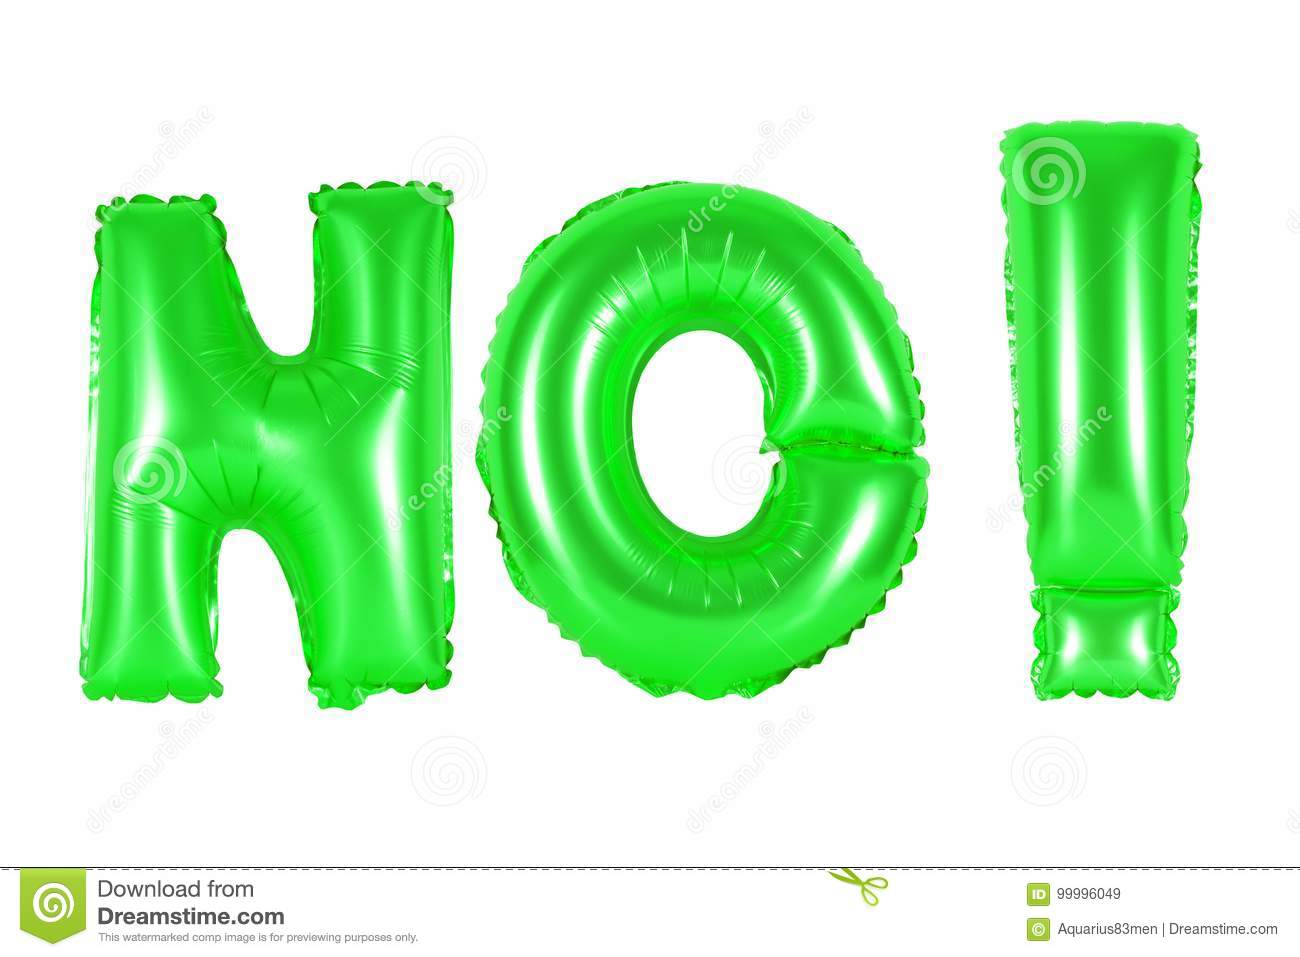 Acronym And Abbreviation, No, Green Color Stock Image - Image of ...